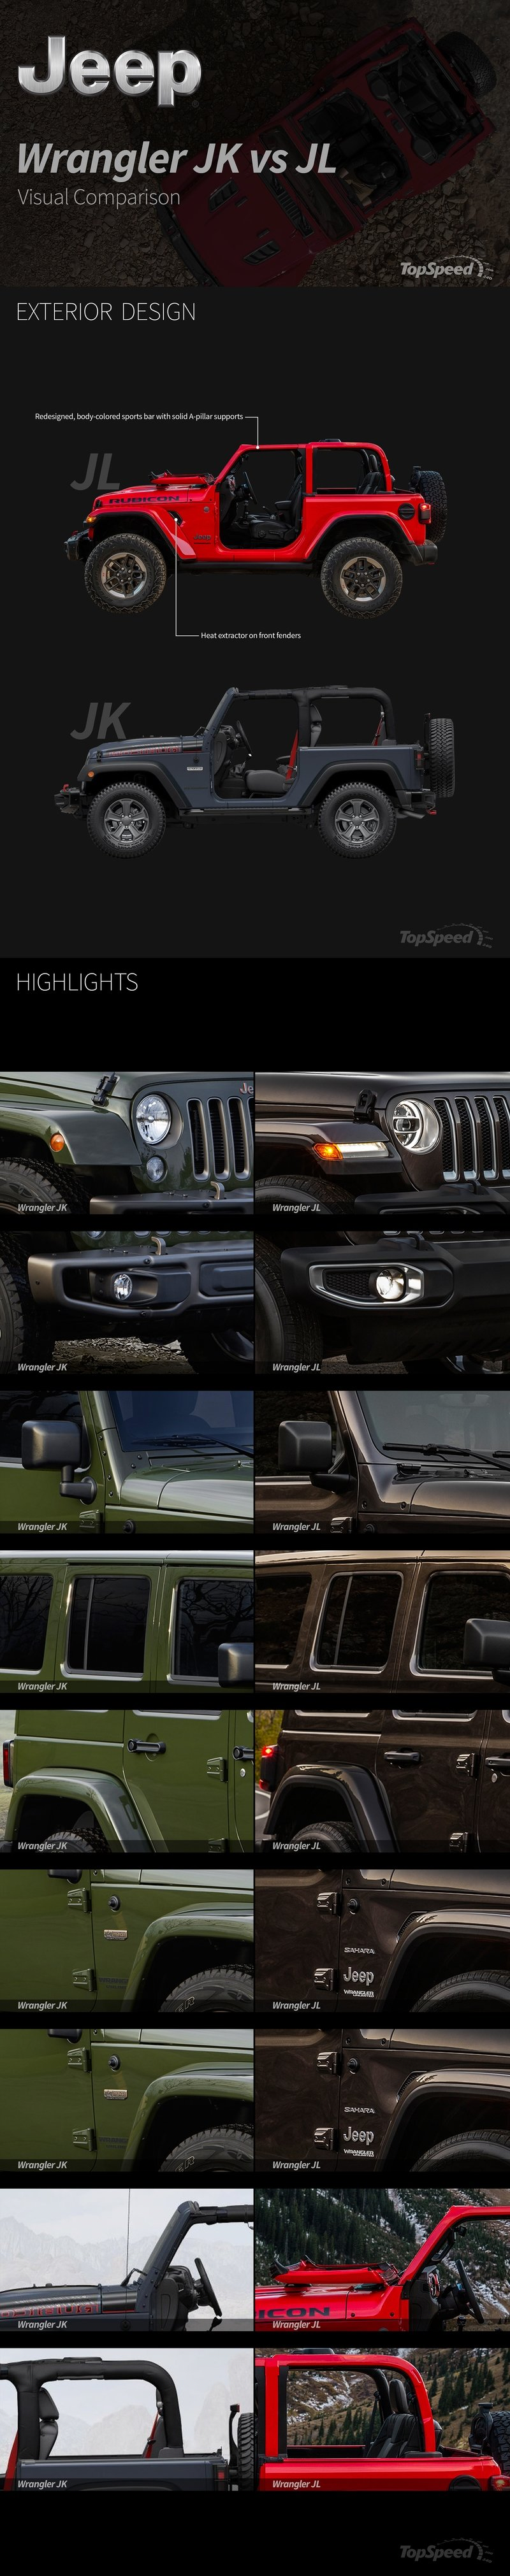 Visual Comparison: Jeep Wrangler JL vs JK